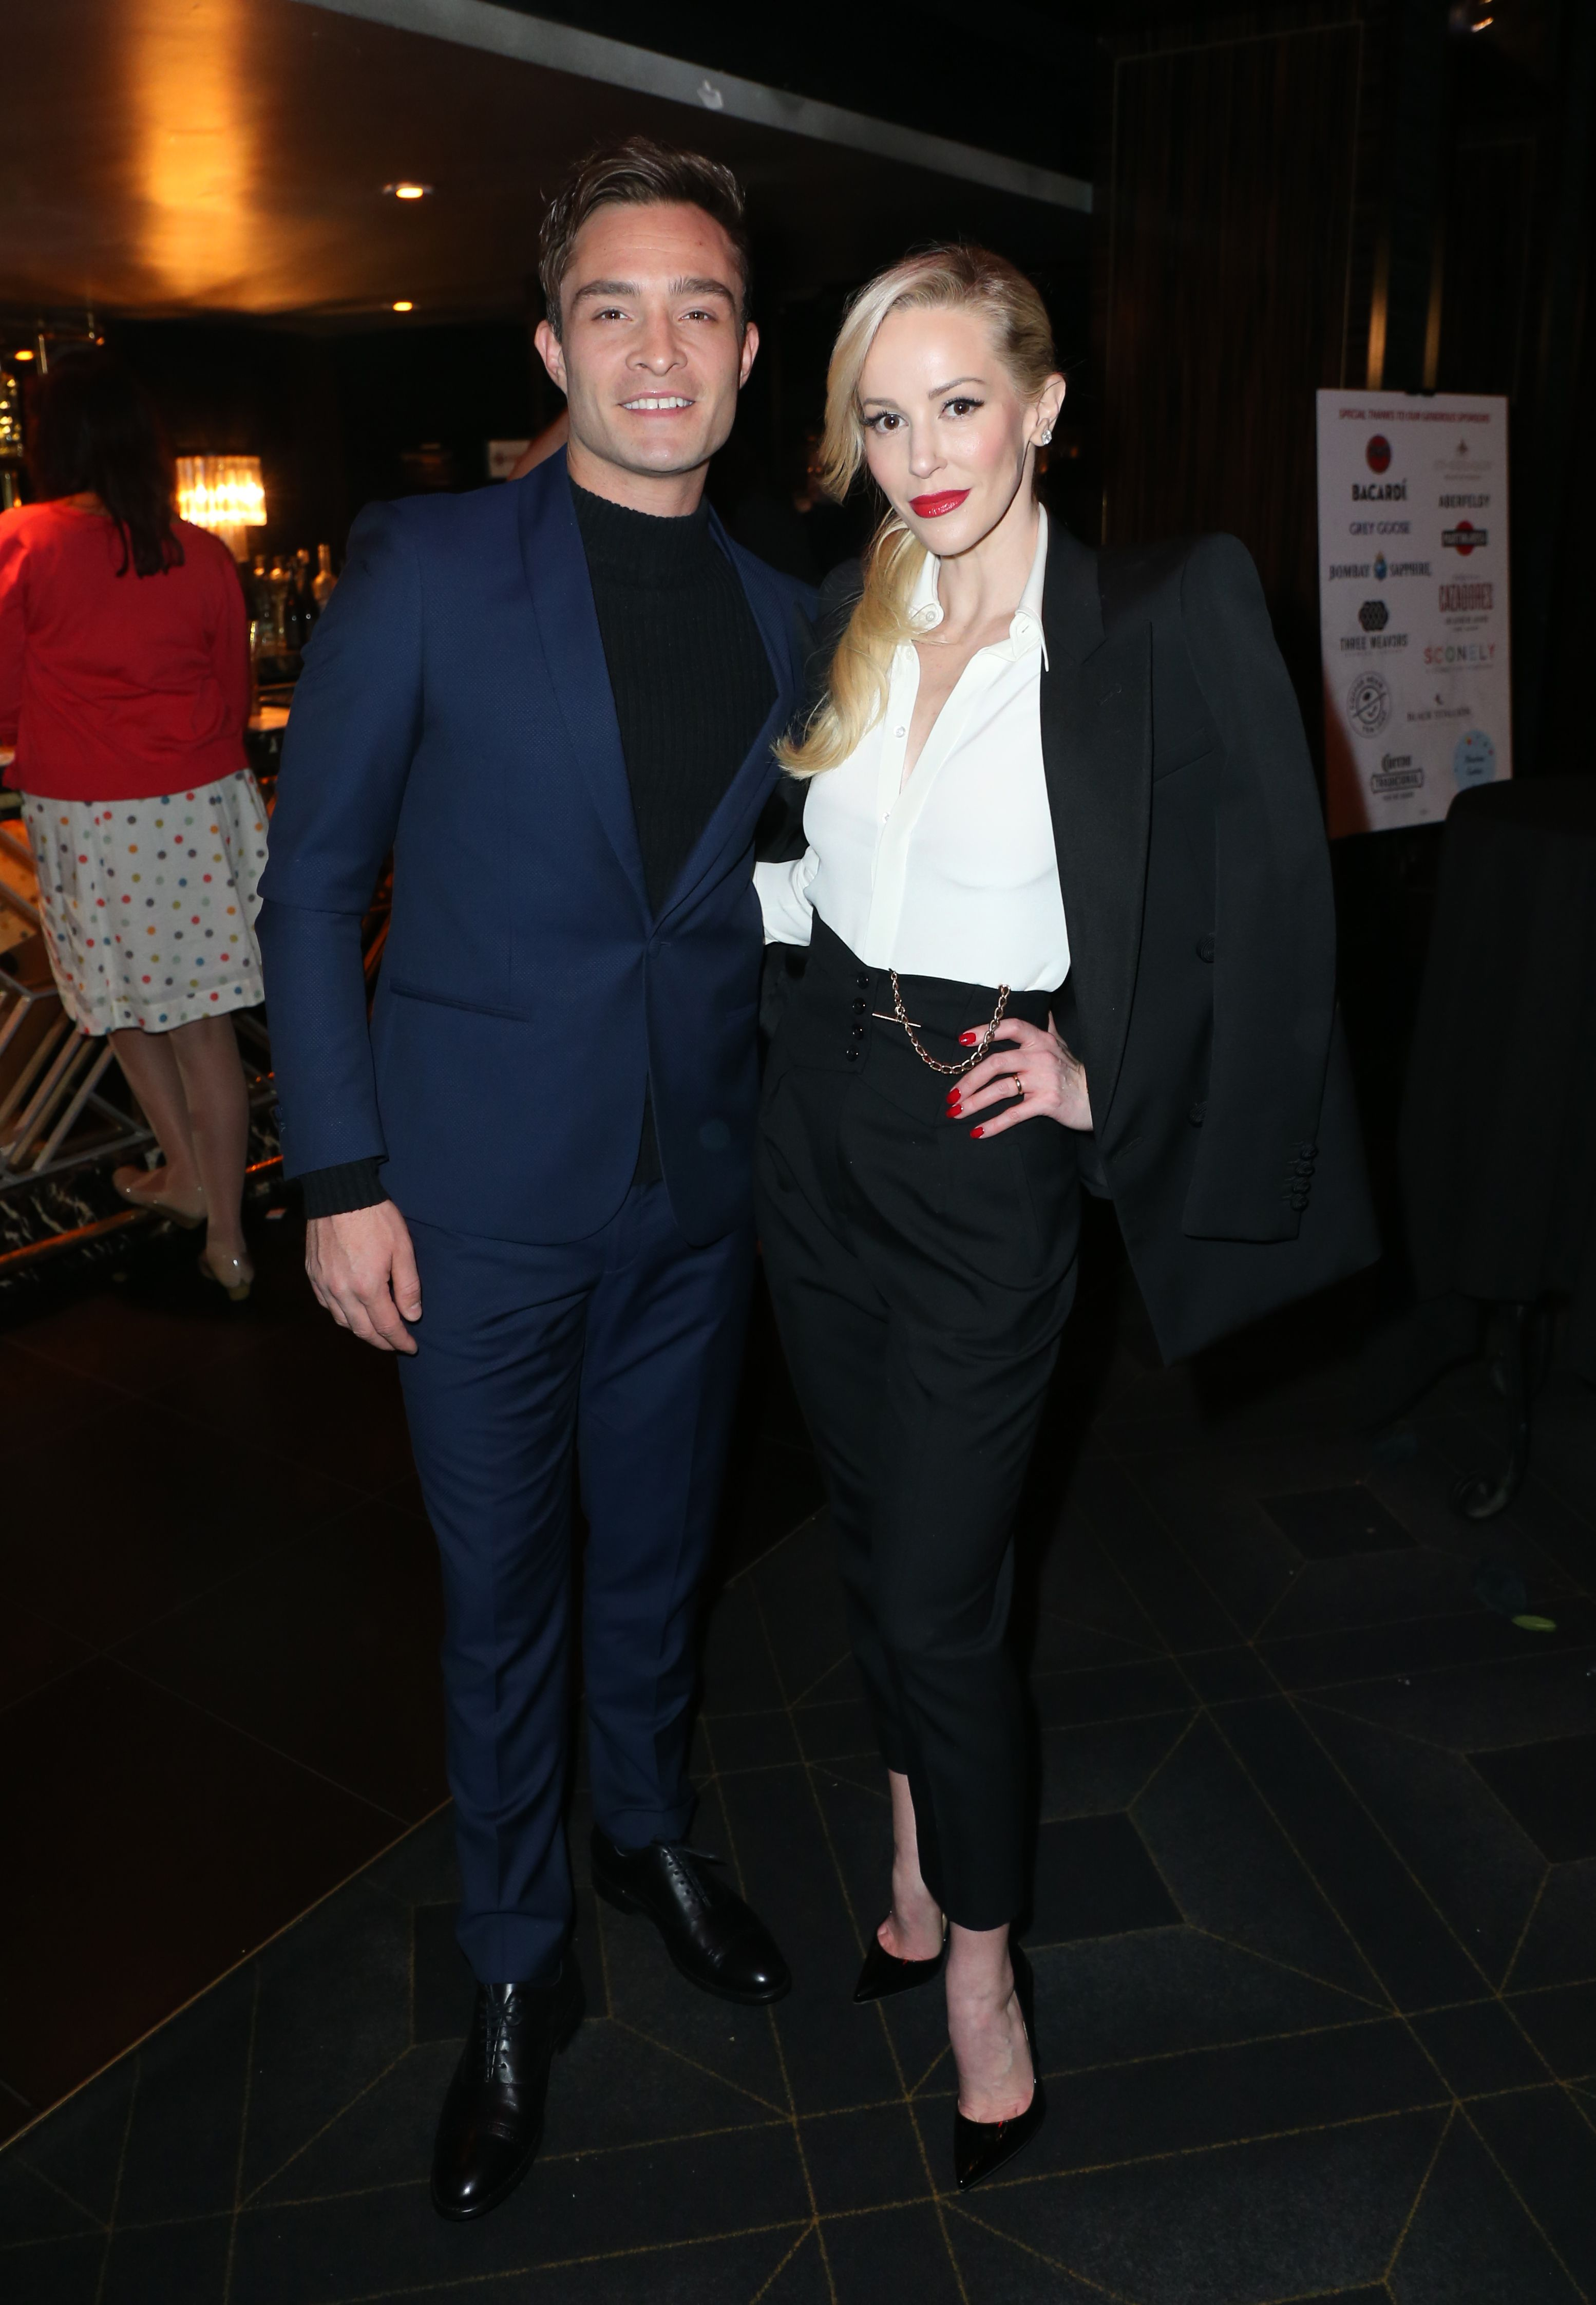 Louise Linton and Ed Westwick, her co-star in Me, You, Madness , pose for a photo together at the California Fire Foundation's 6th Annual Gala in March of 2019.